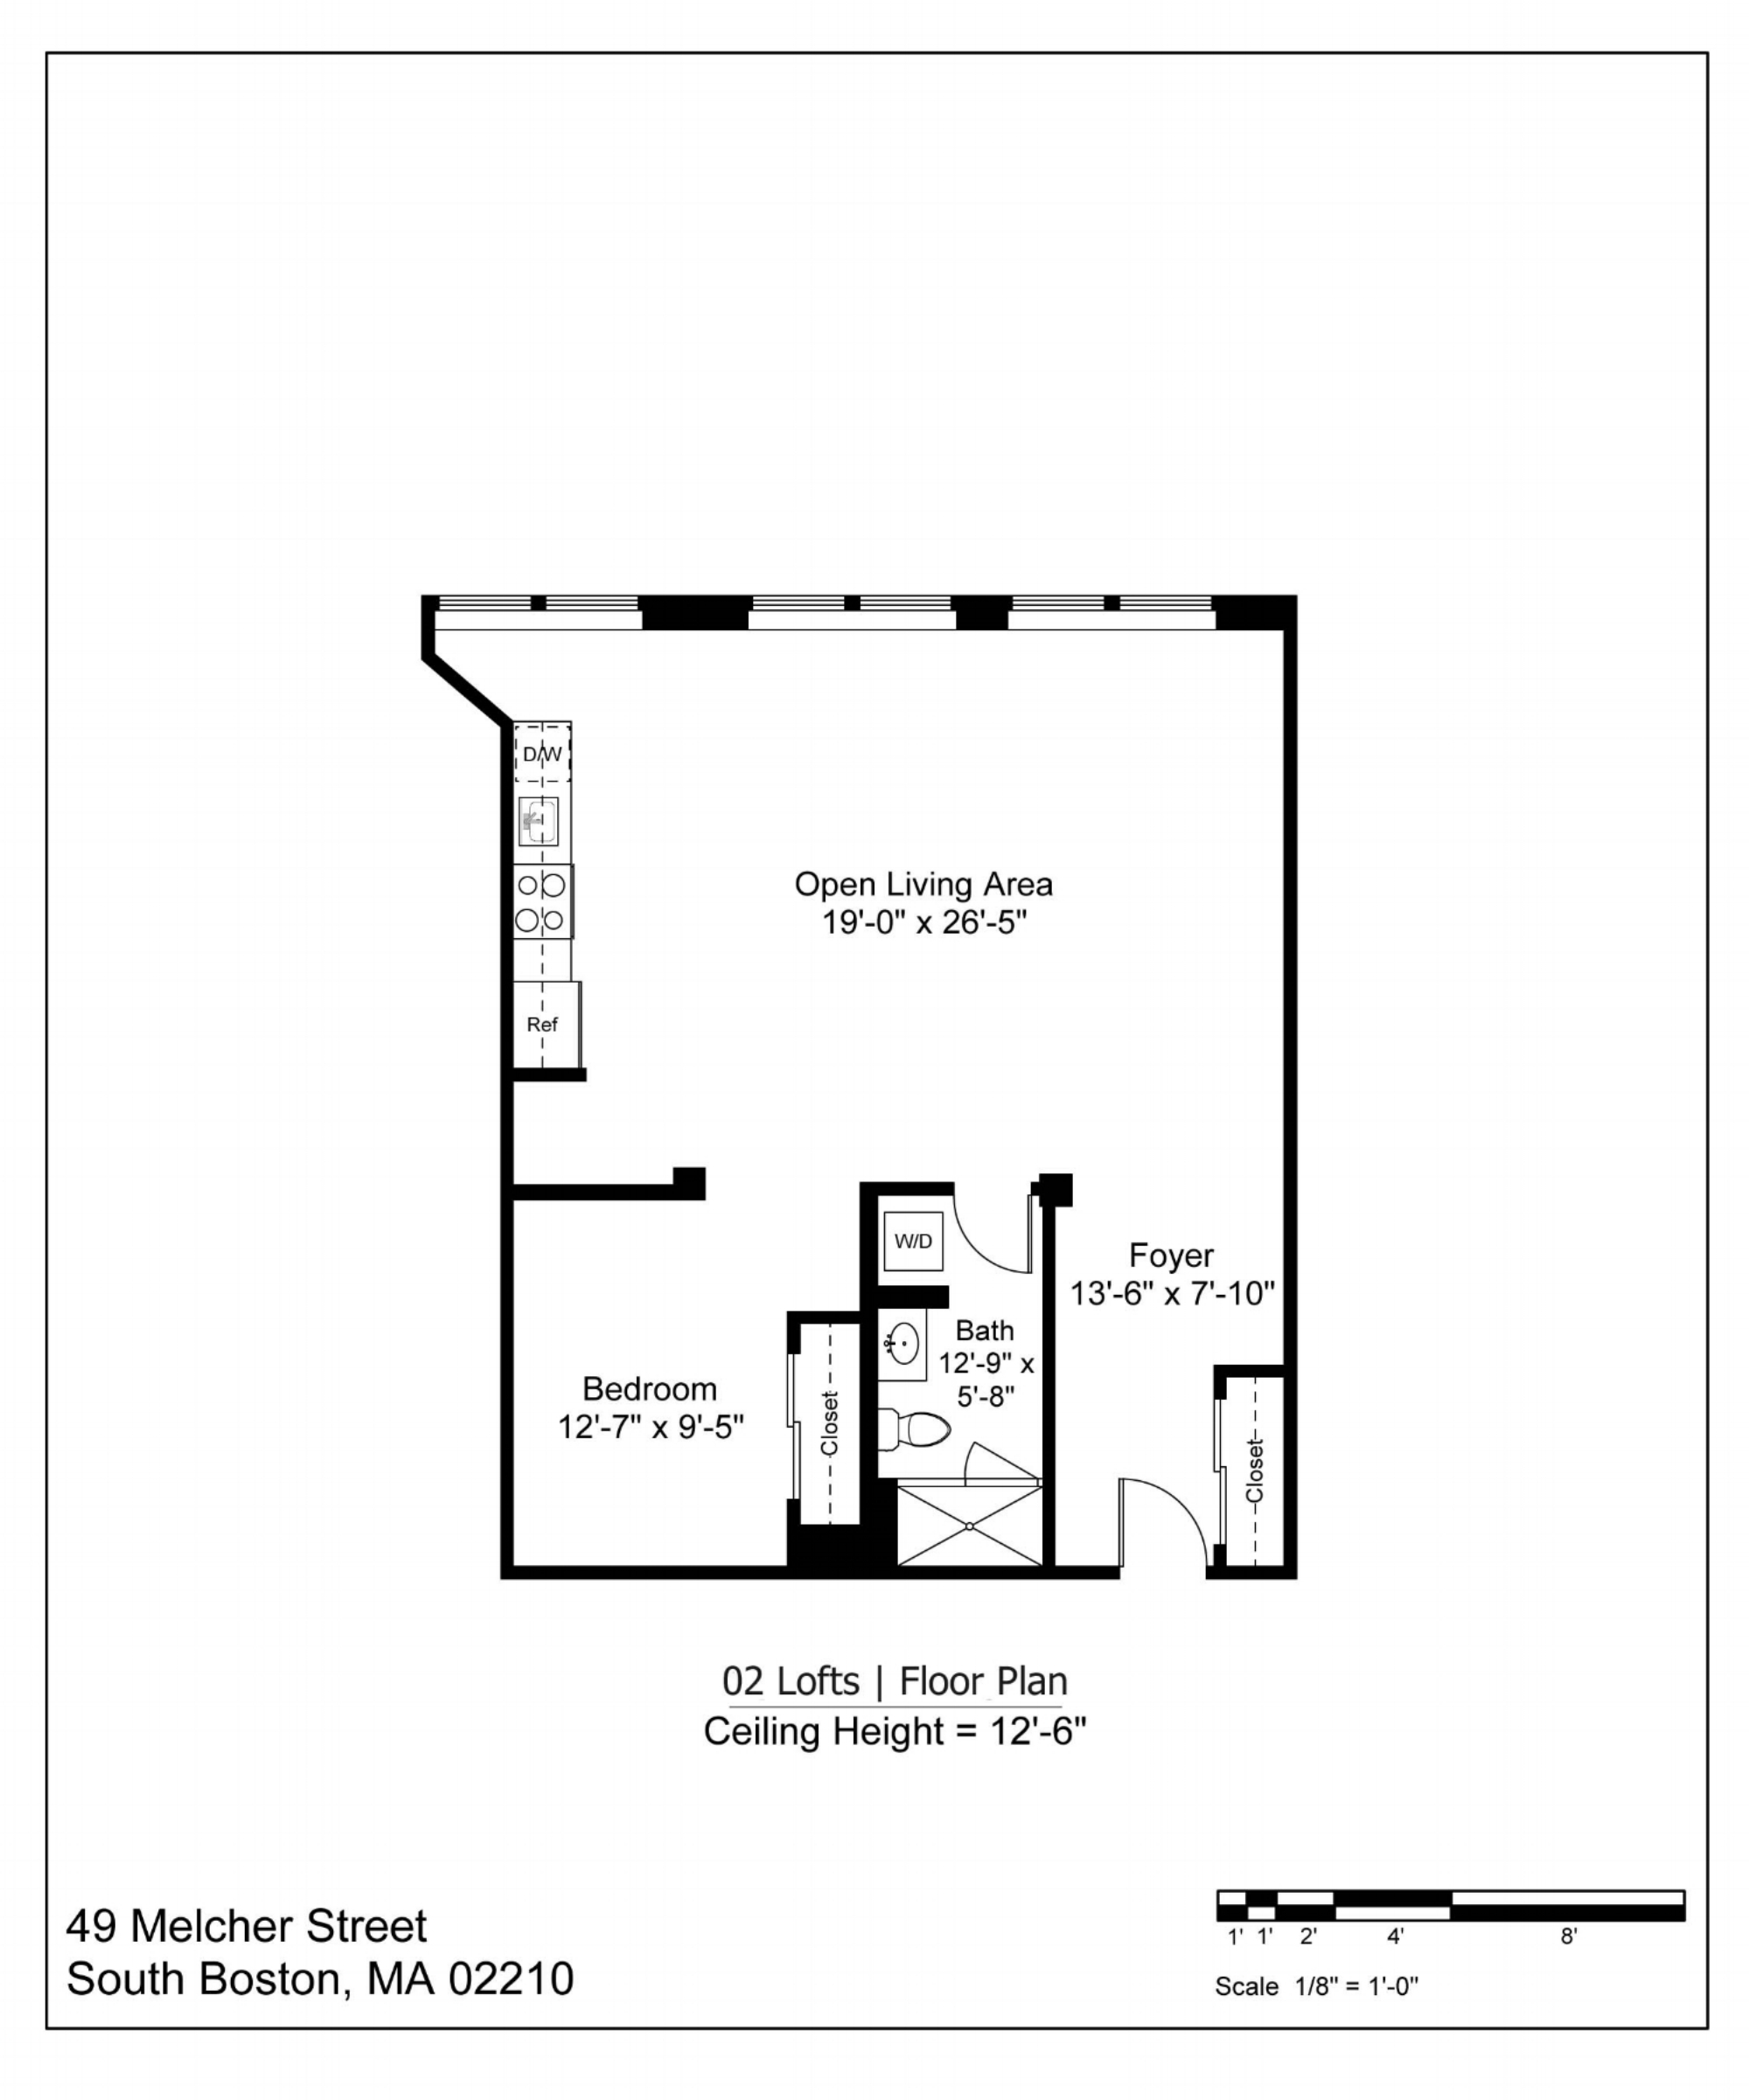 02 LOFT FLOOR PLAN - 867 SF | $2900-3250/MONTH